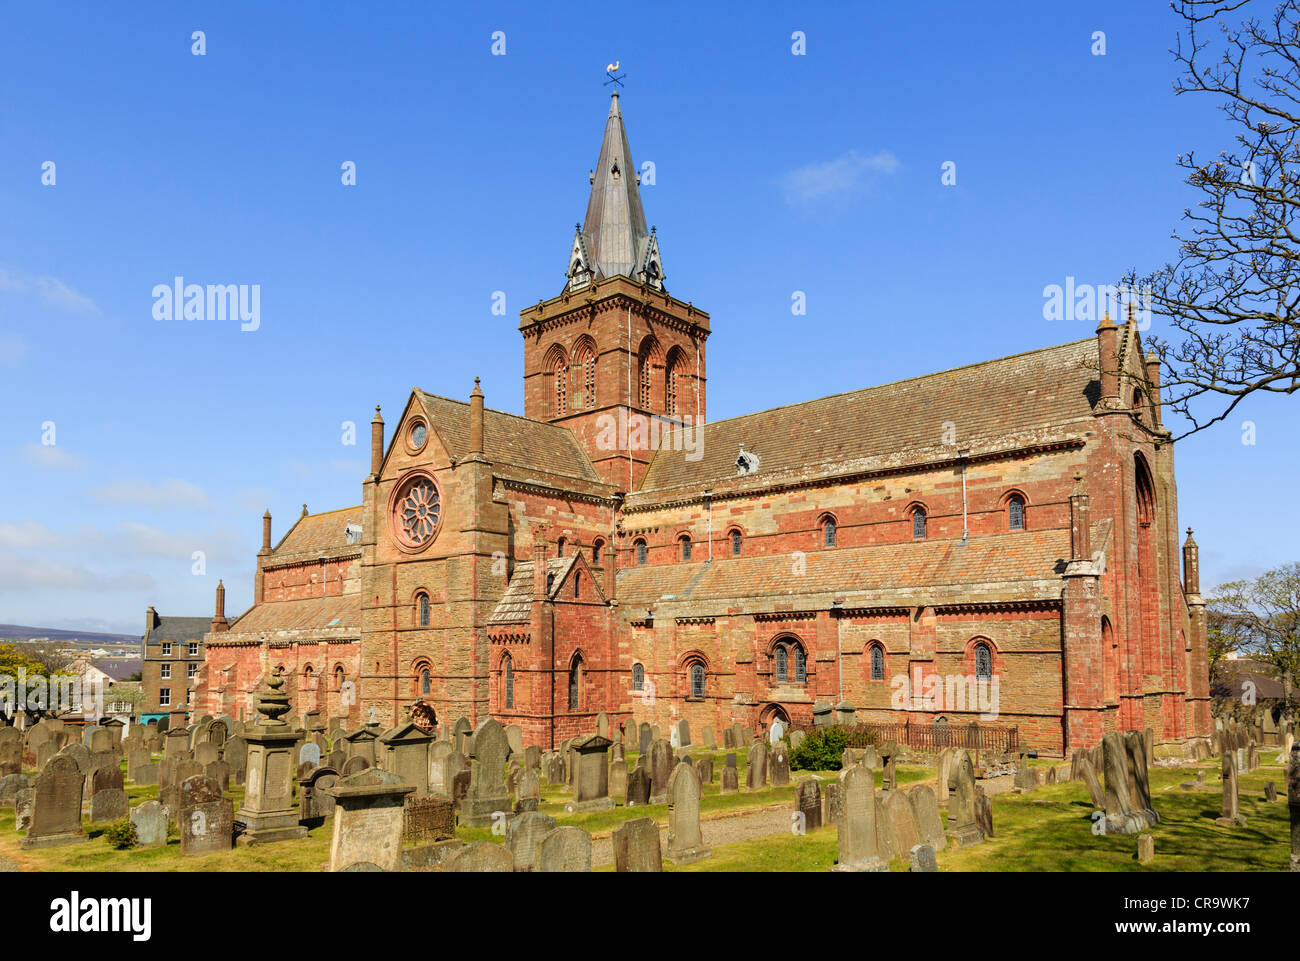 12th century Romanesque Saint Magnus cathedral in Kirkwall, Orkney Islands, Scotland, UK is most northerly in Britain - Stock Image